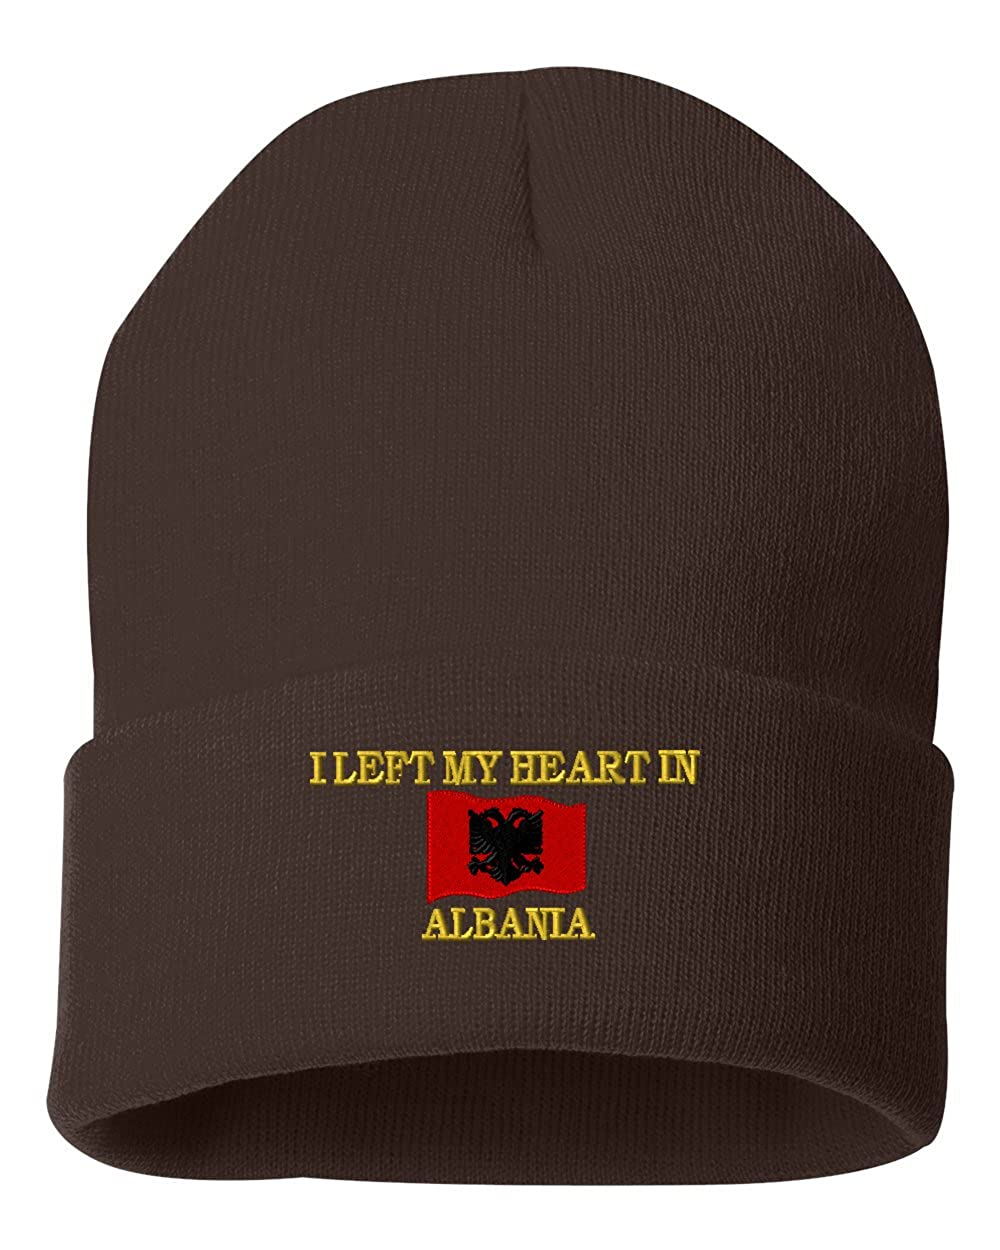 I LEFT MY HEARD IN ALBANIA Custom Personalized Embroidery Embroidered Beanie